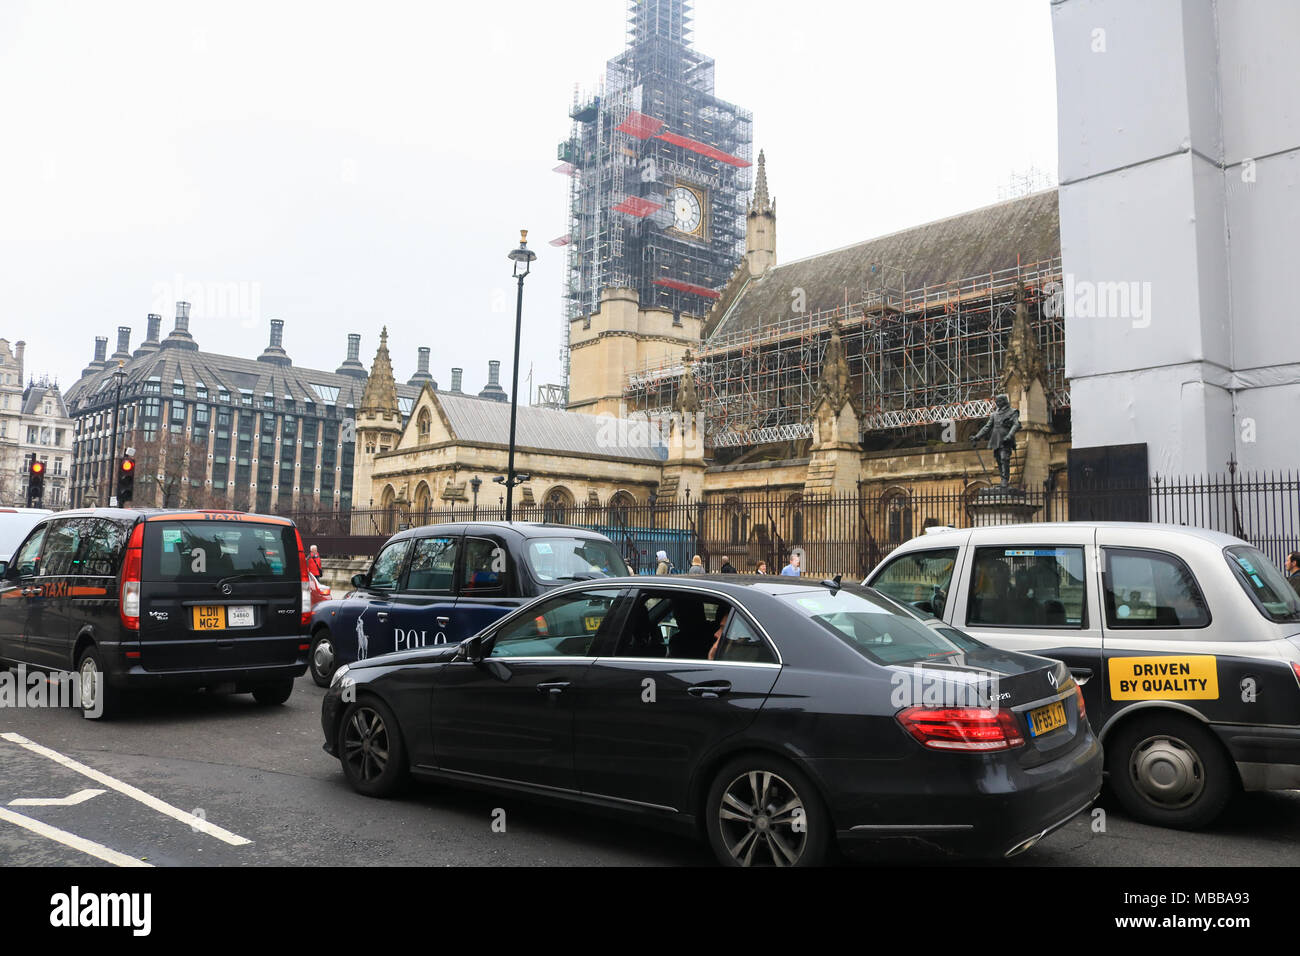 London UK. 10th April 2018. The hands which mark the time at the Big Ben clock tower have been removed as partof the Westminster renovation programme Credit: amer ghazzal/Alamy Live News Stock Photo